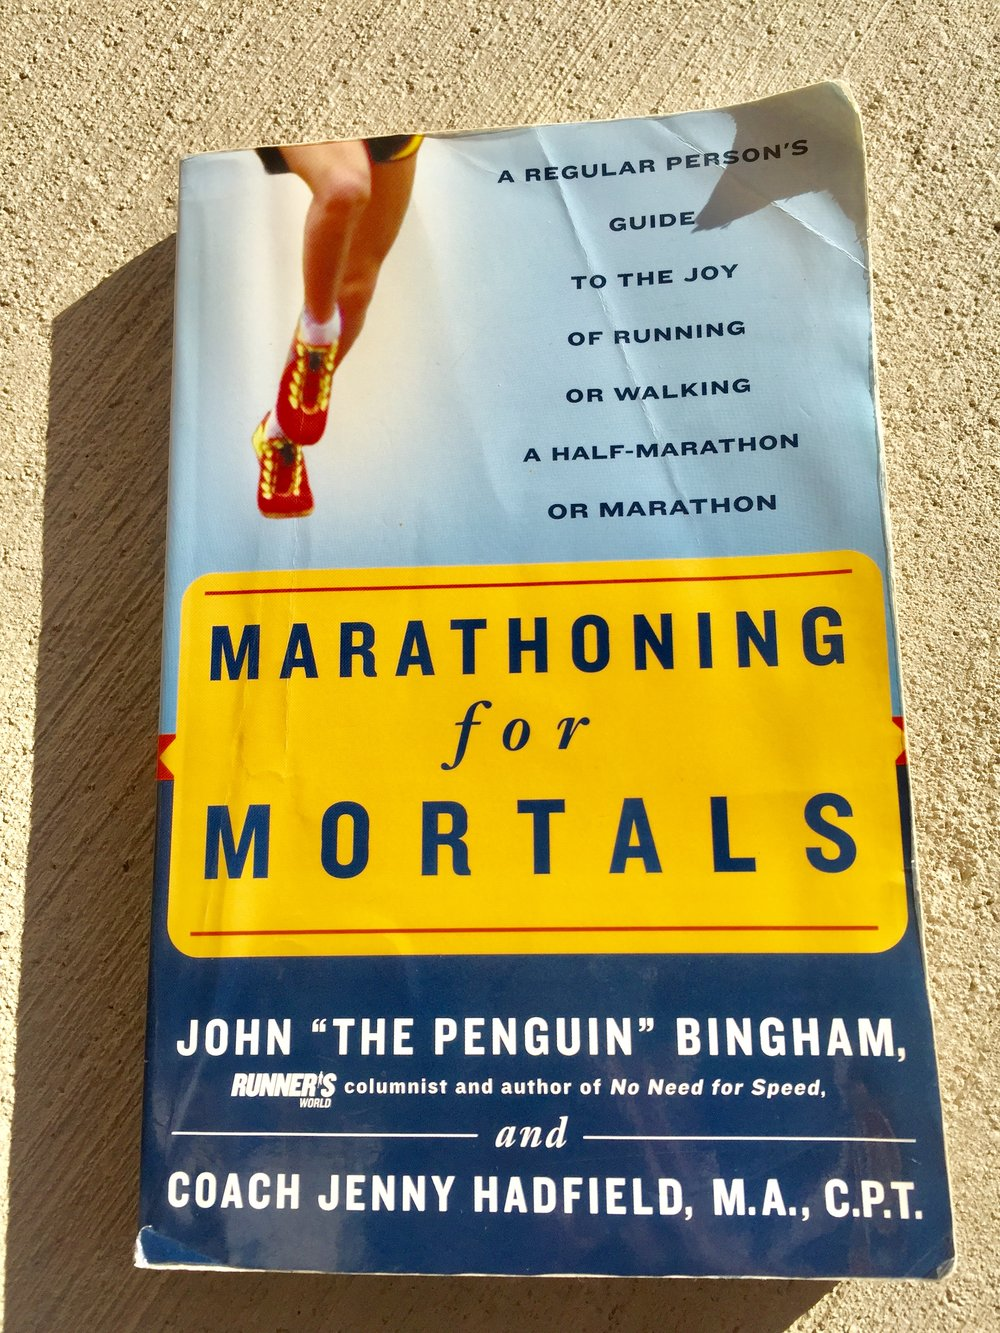 This is the book I read when I started running - It is a guide for people that is just starting. I never run that long before, But I followed the schedule until the end and I run my first Half Marathon with a good time and I was well prepared for it.Marathoning for Mortals: A Regular Person's Guide to the Joy of Running or Walking a Half-Marathon or Marathon Paperback – May 2, 2003. by John Bingham (Author), Jenny Hadfield (Author)